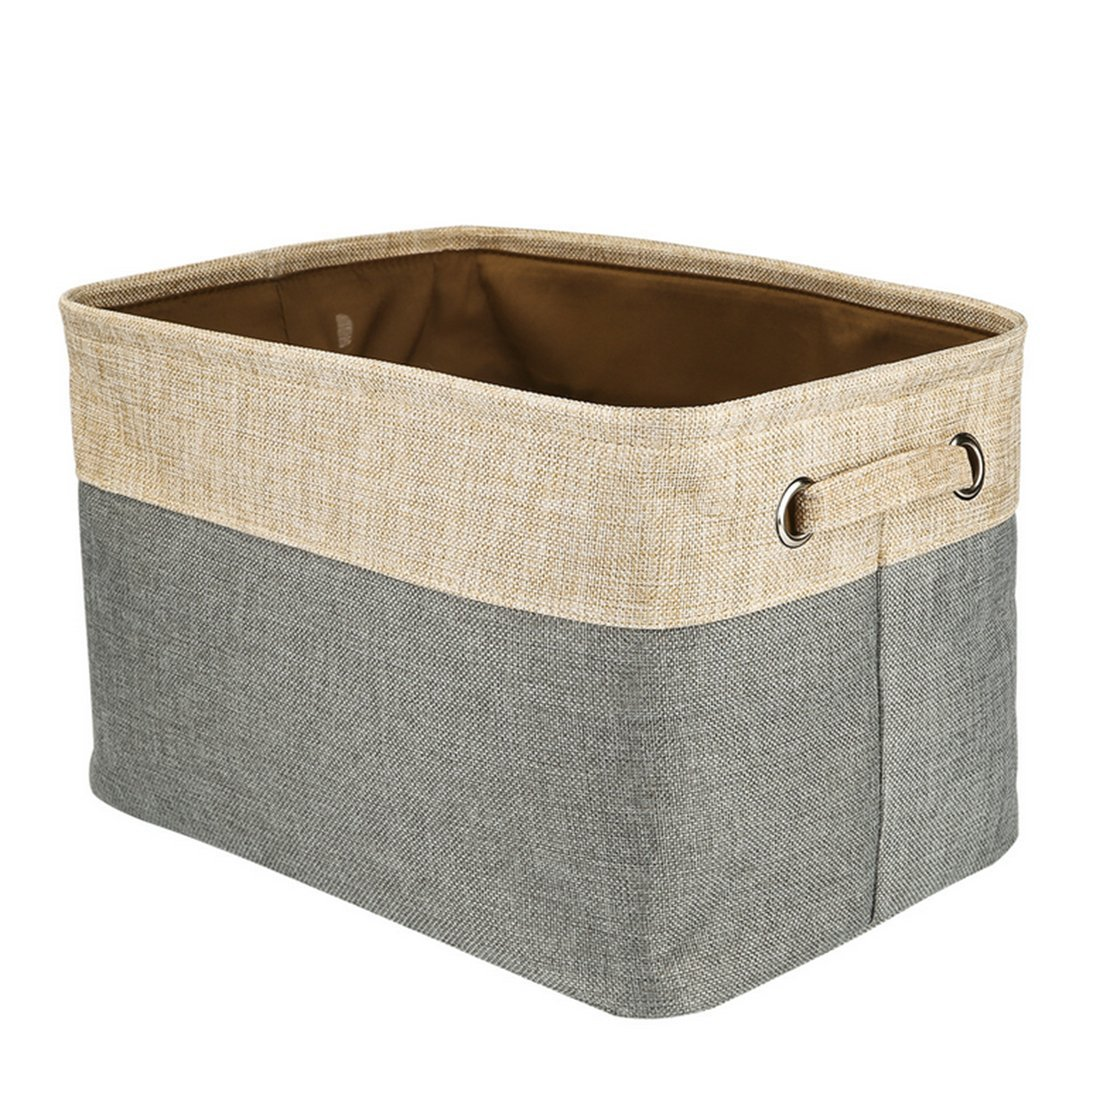 RAVPump Natural Cotton Linen Storage Box Collapsible Storage Basket  Organizer Case With Handles For Home Clothes